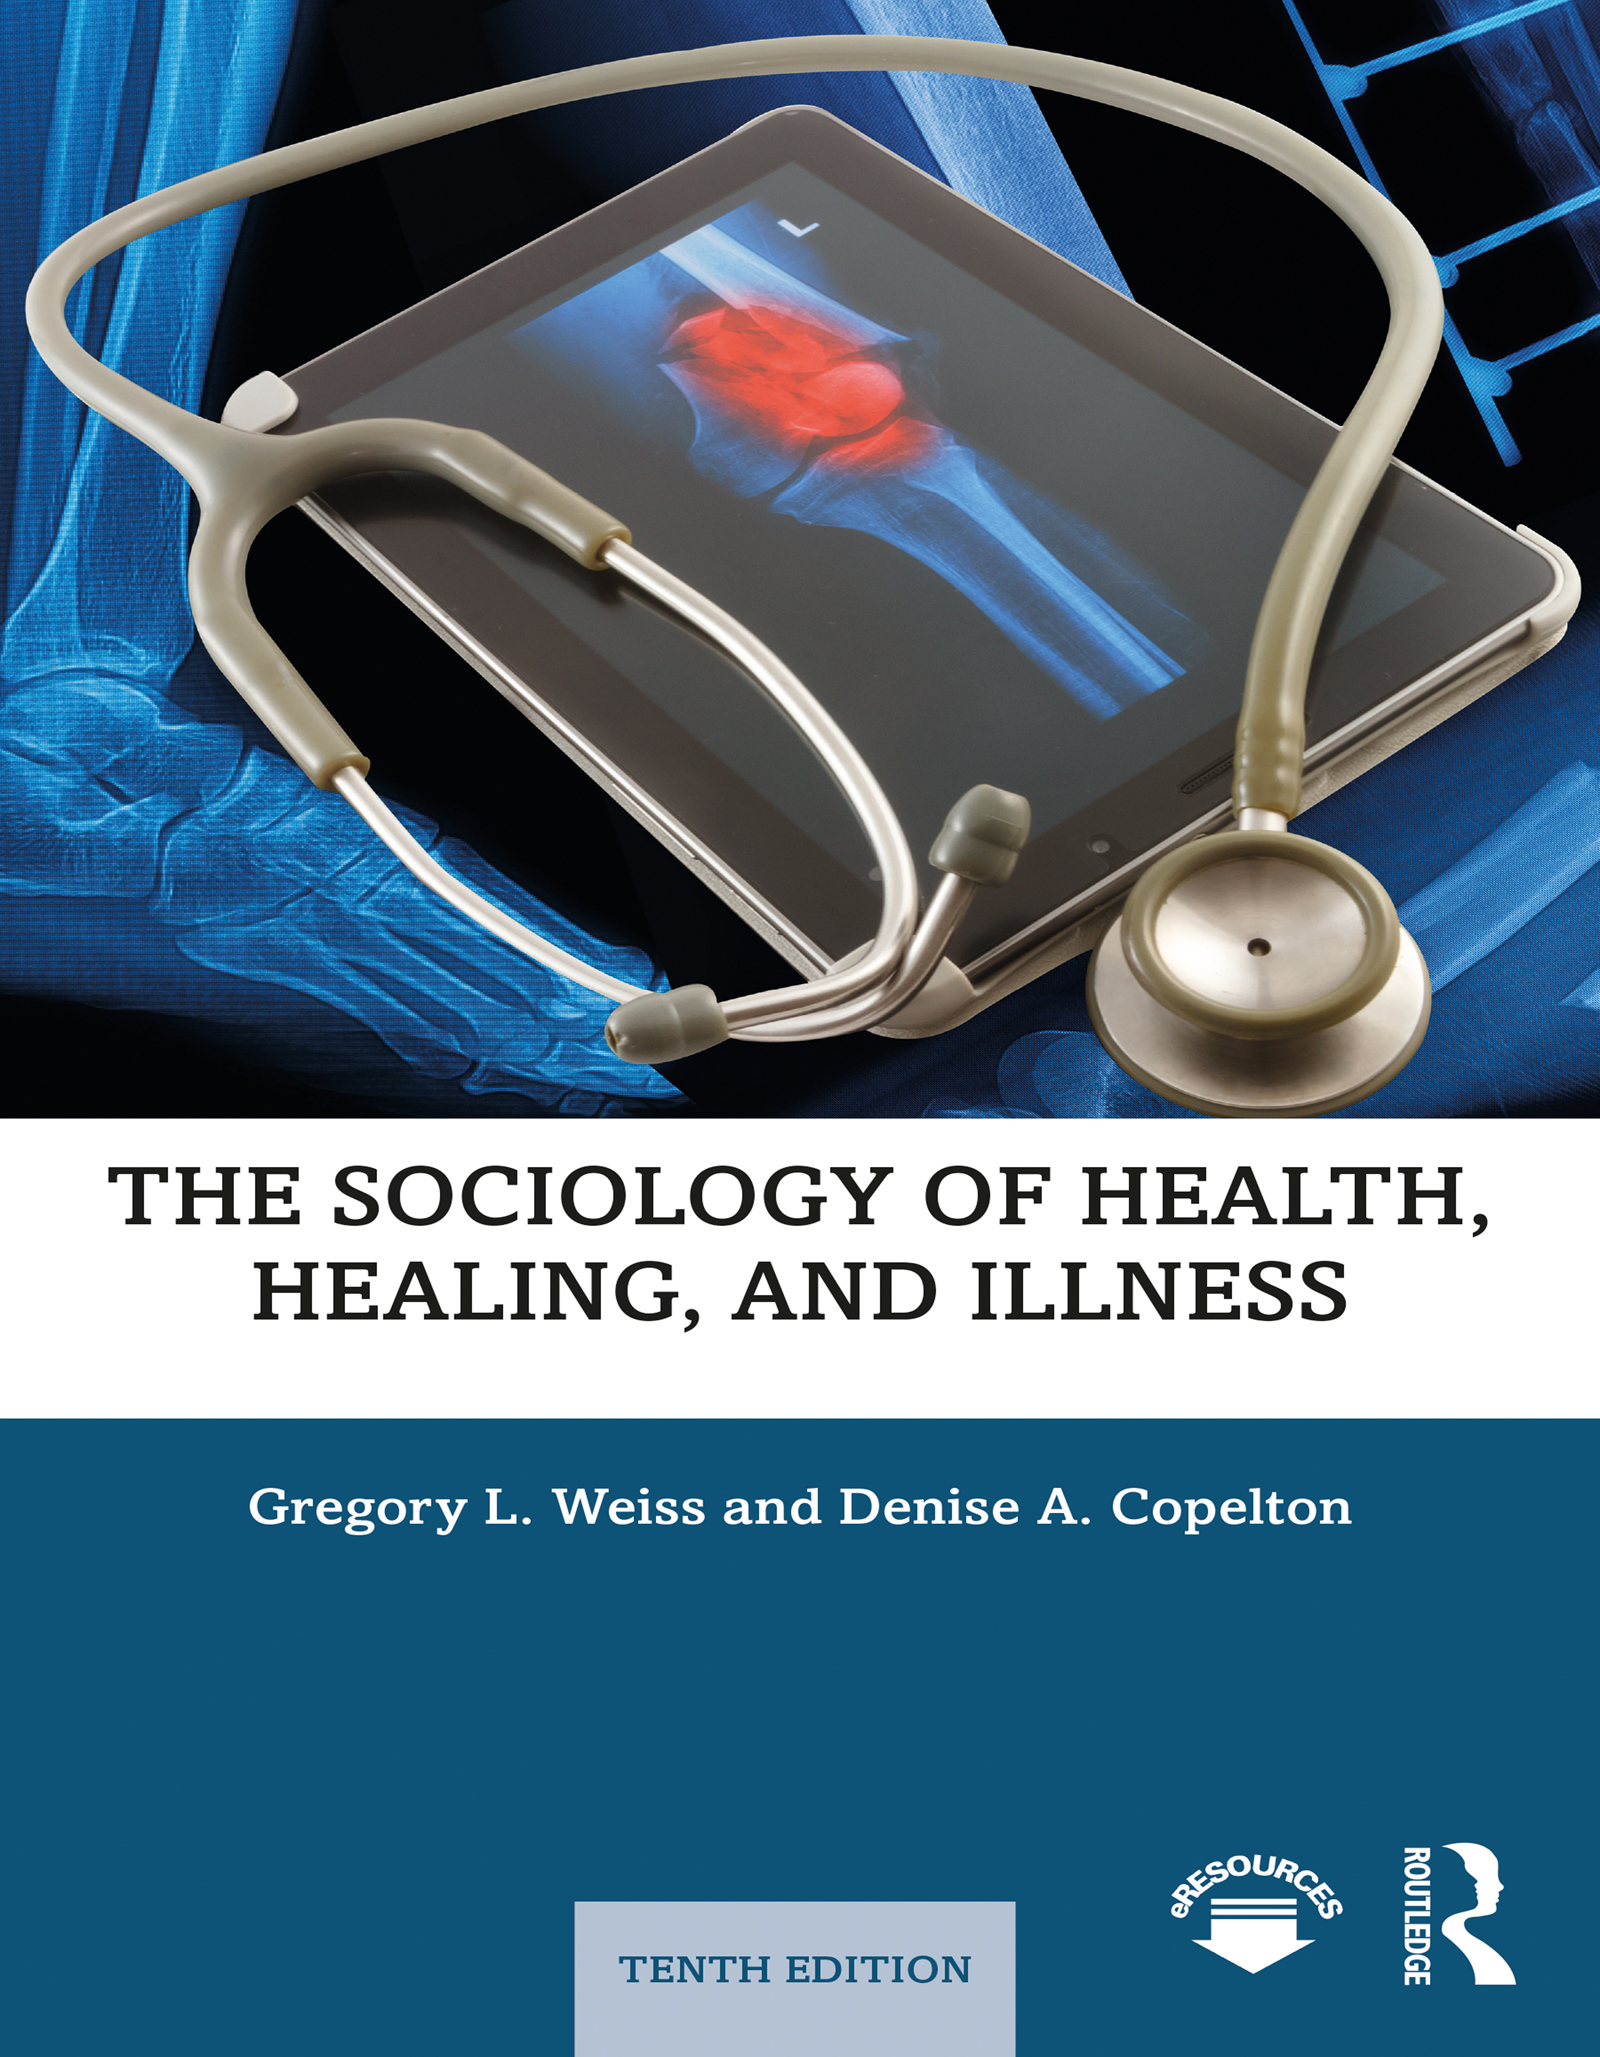 The Sociology of Health, Healing, and Illness book cover